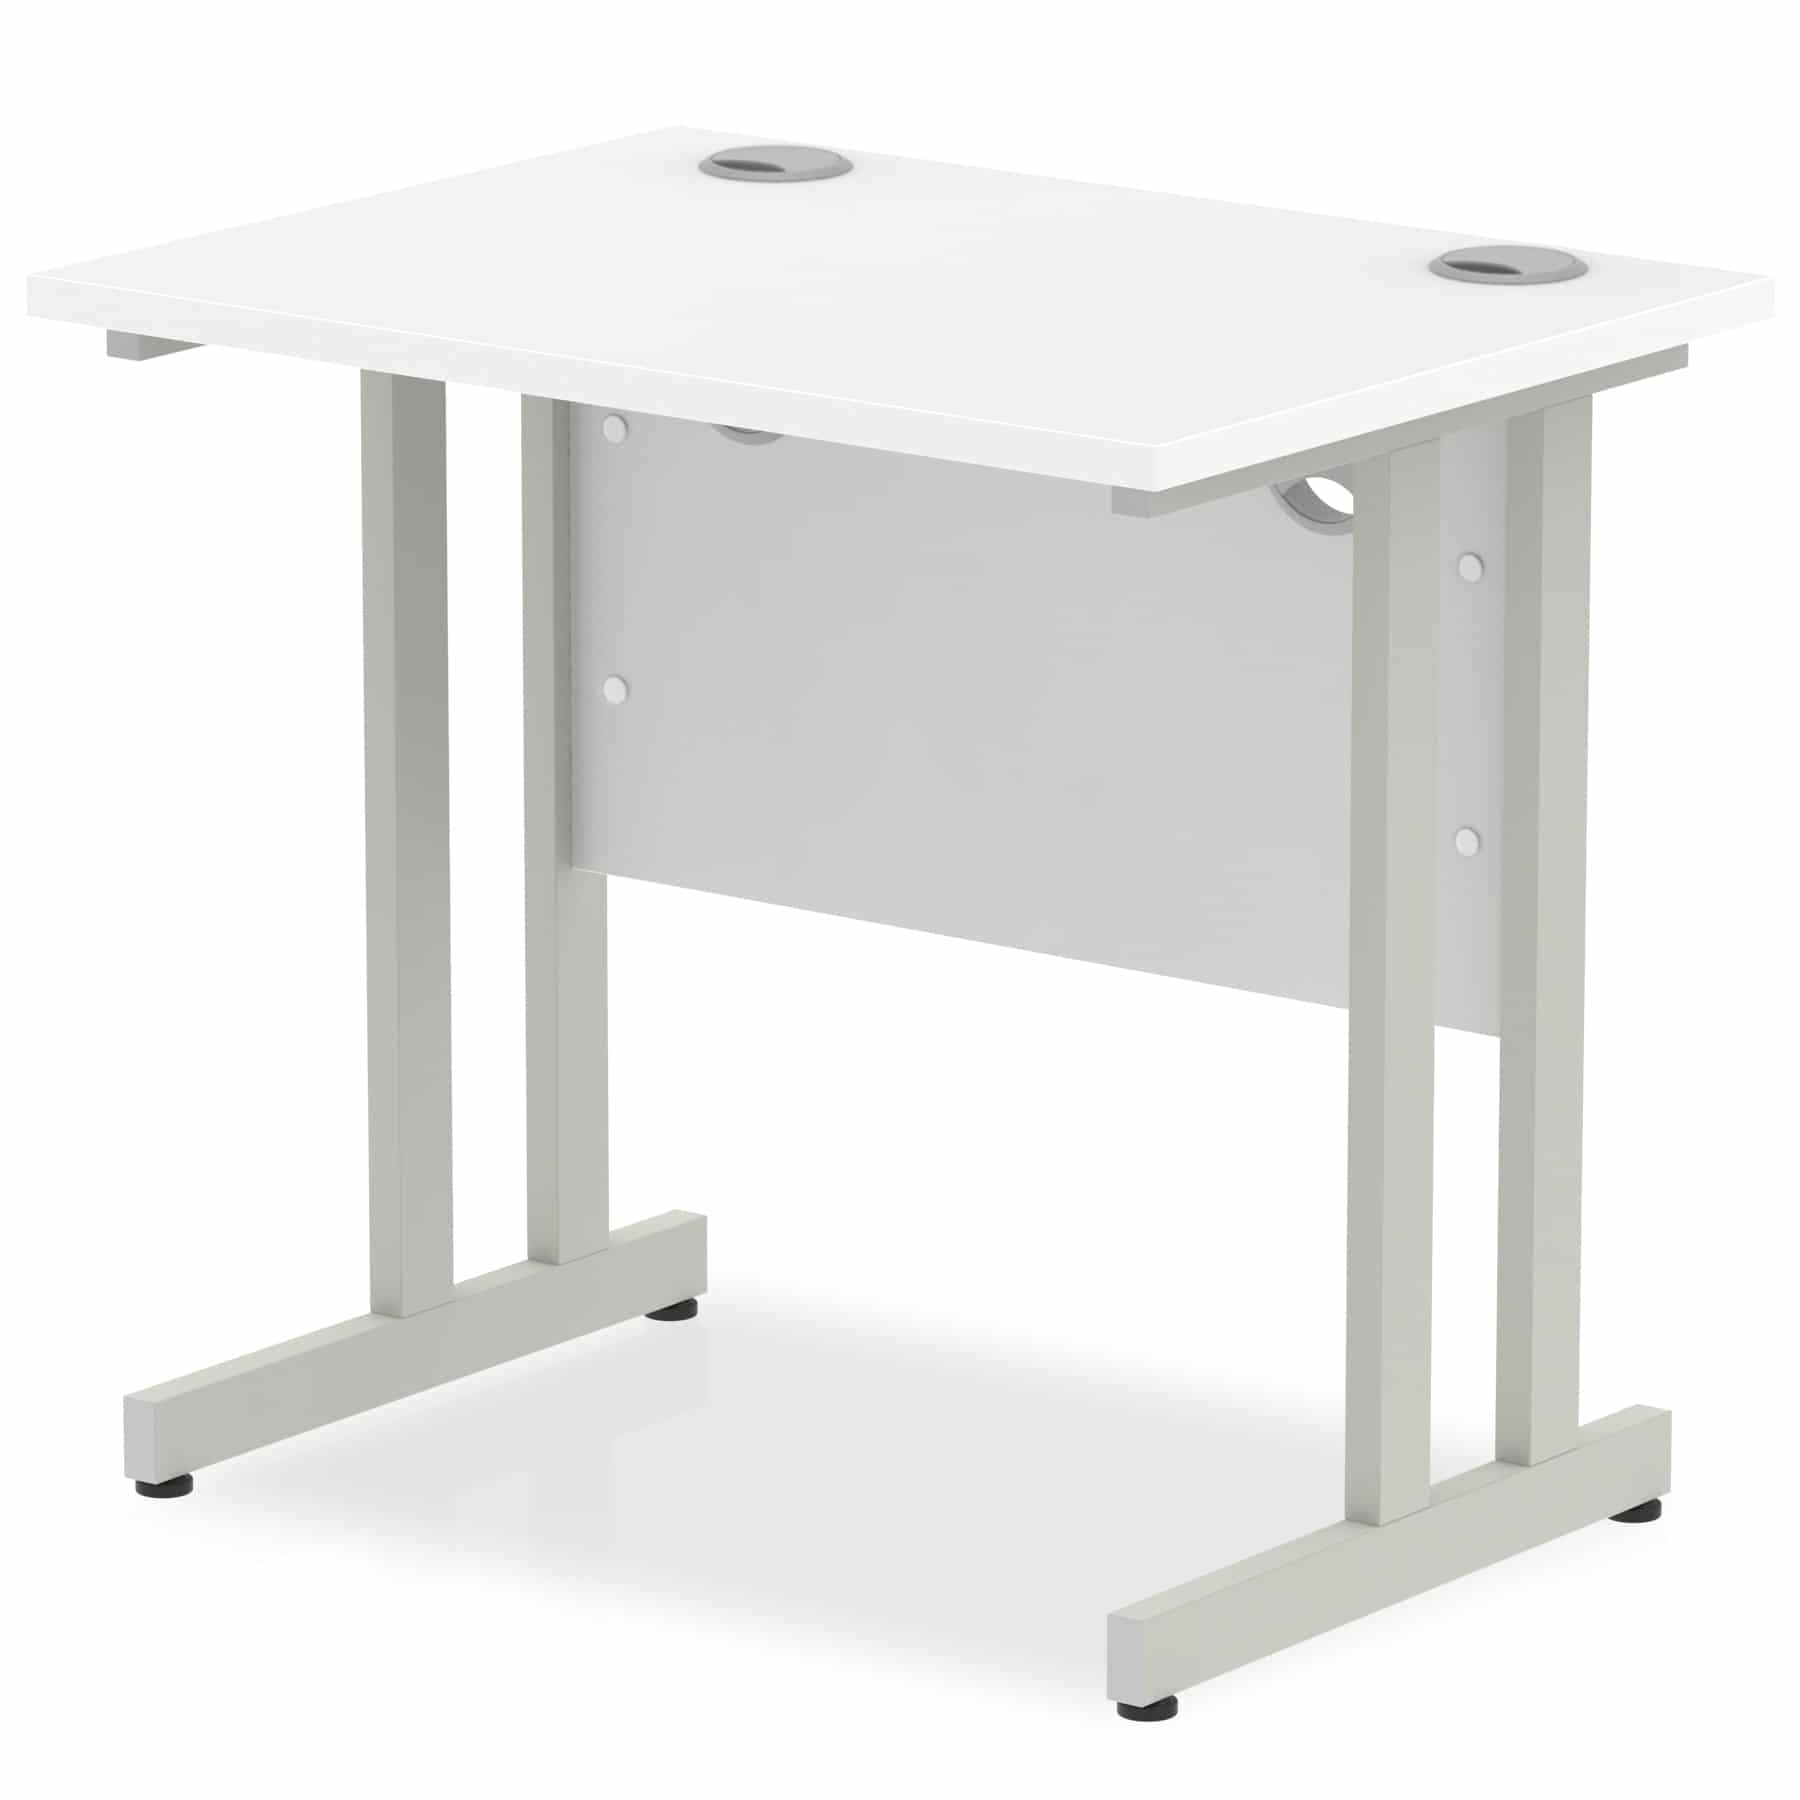 Slimline 800mm x 600mm Rectangular Straight Desk in White